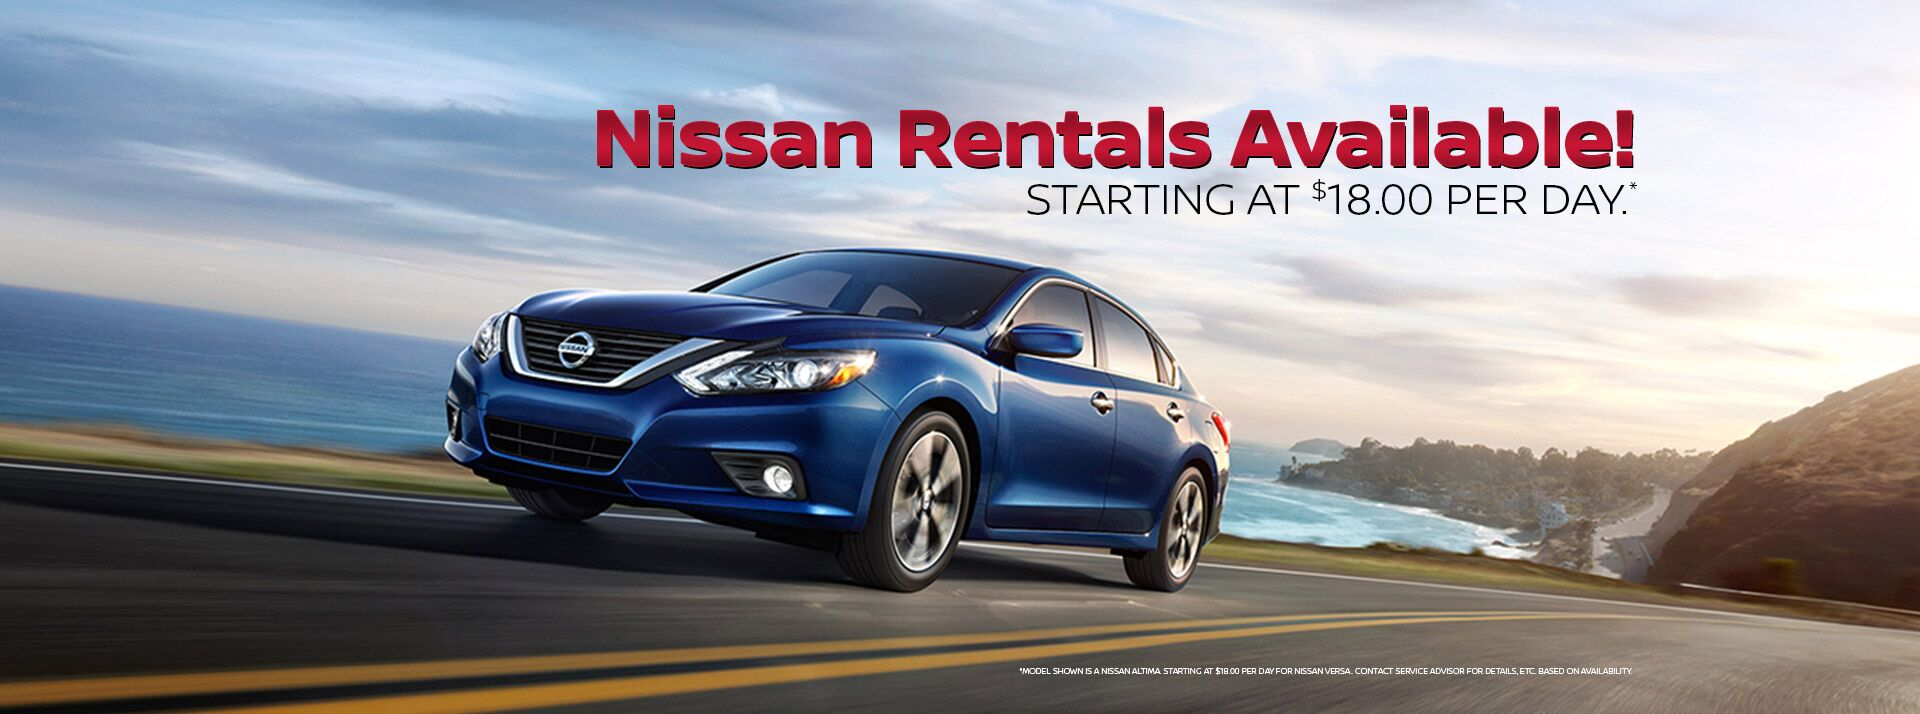 Nissan Rentals Available